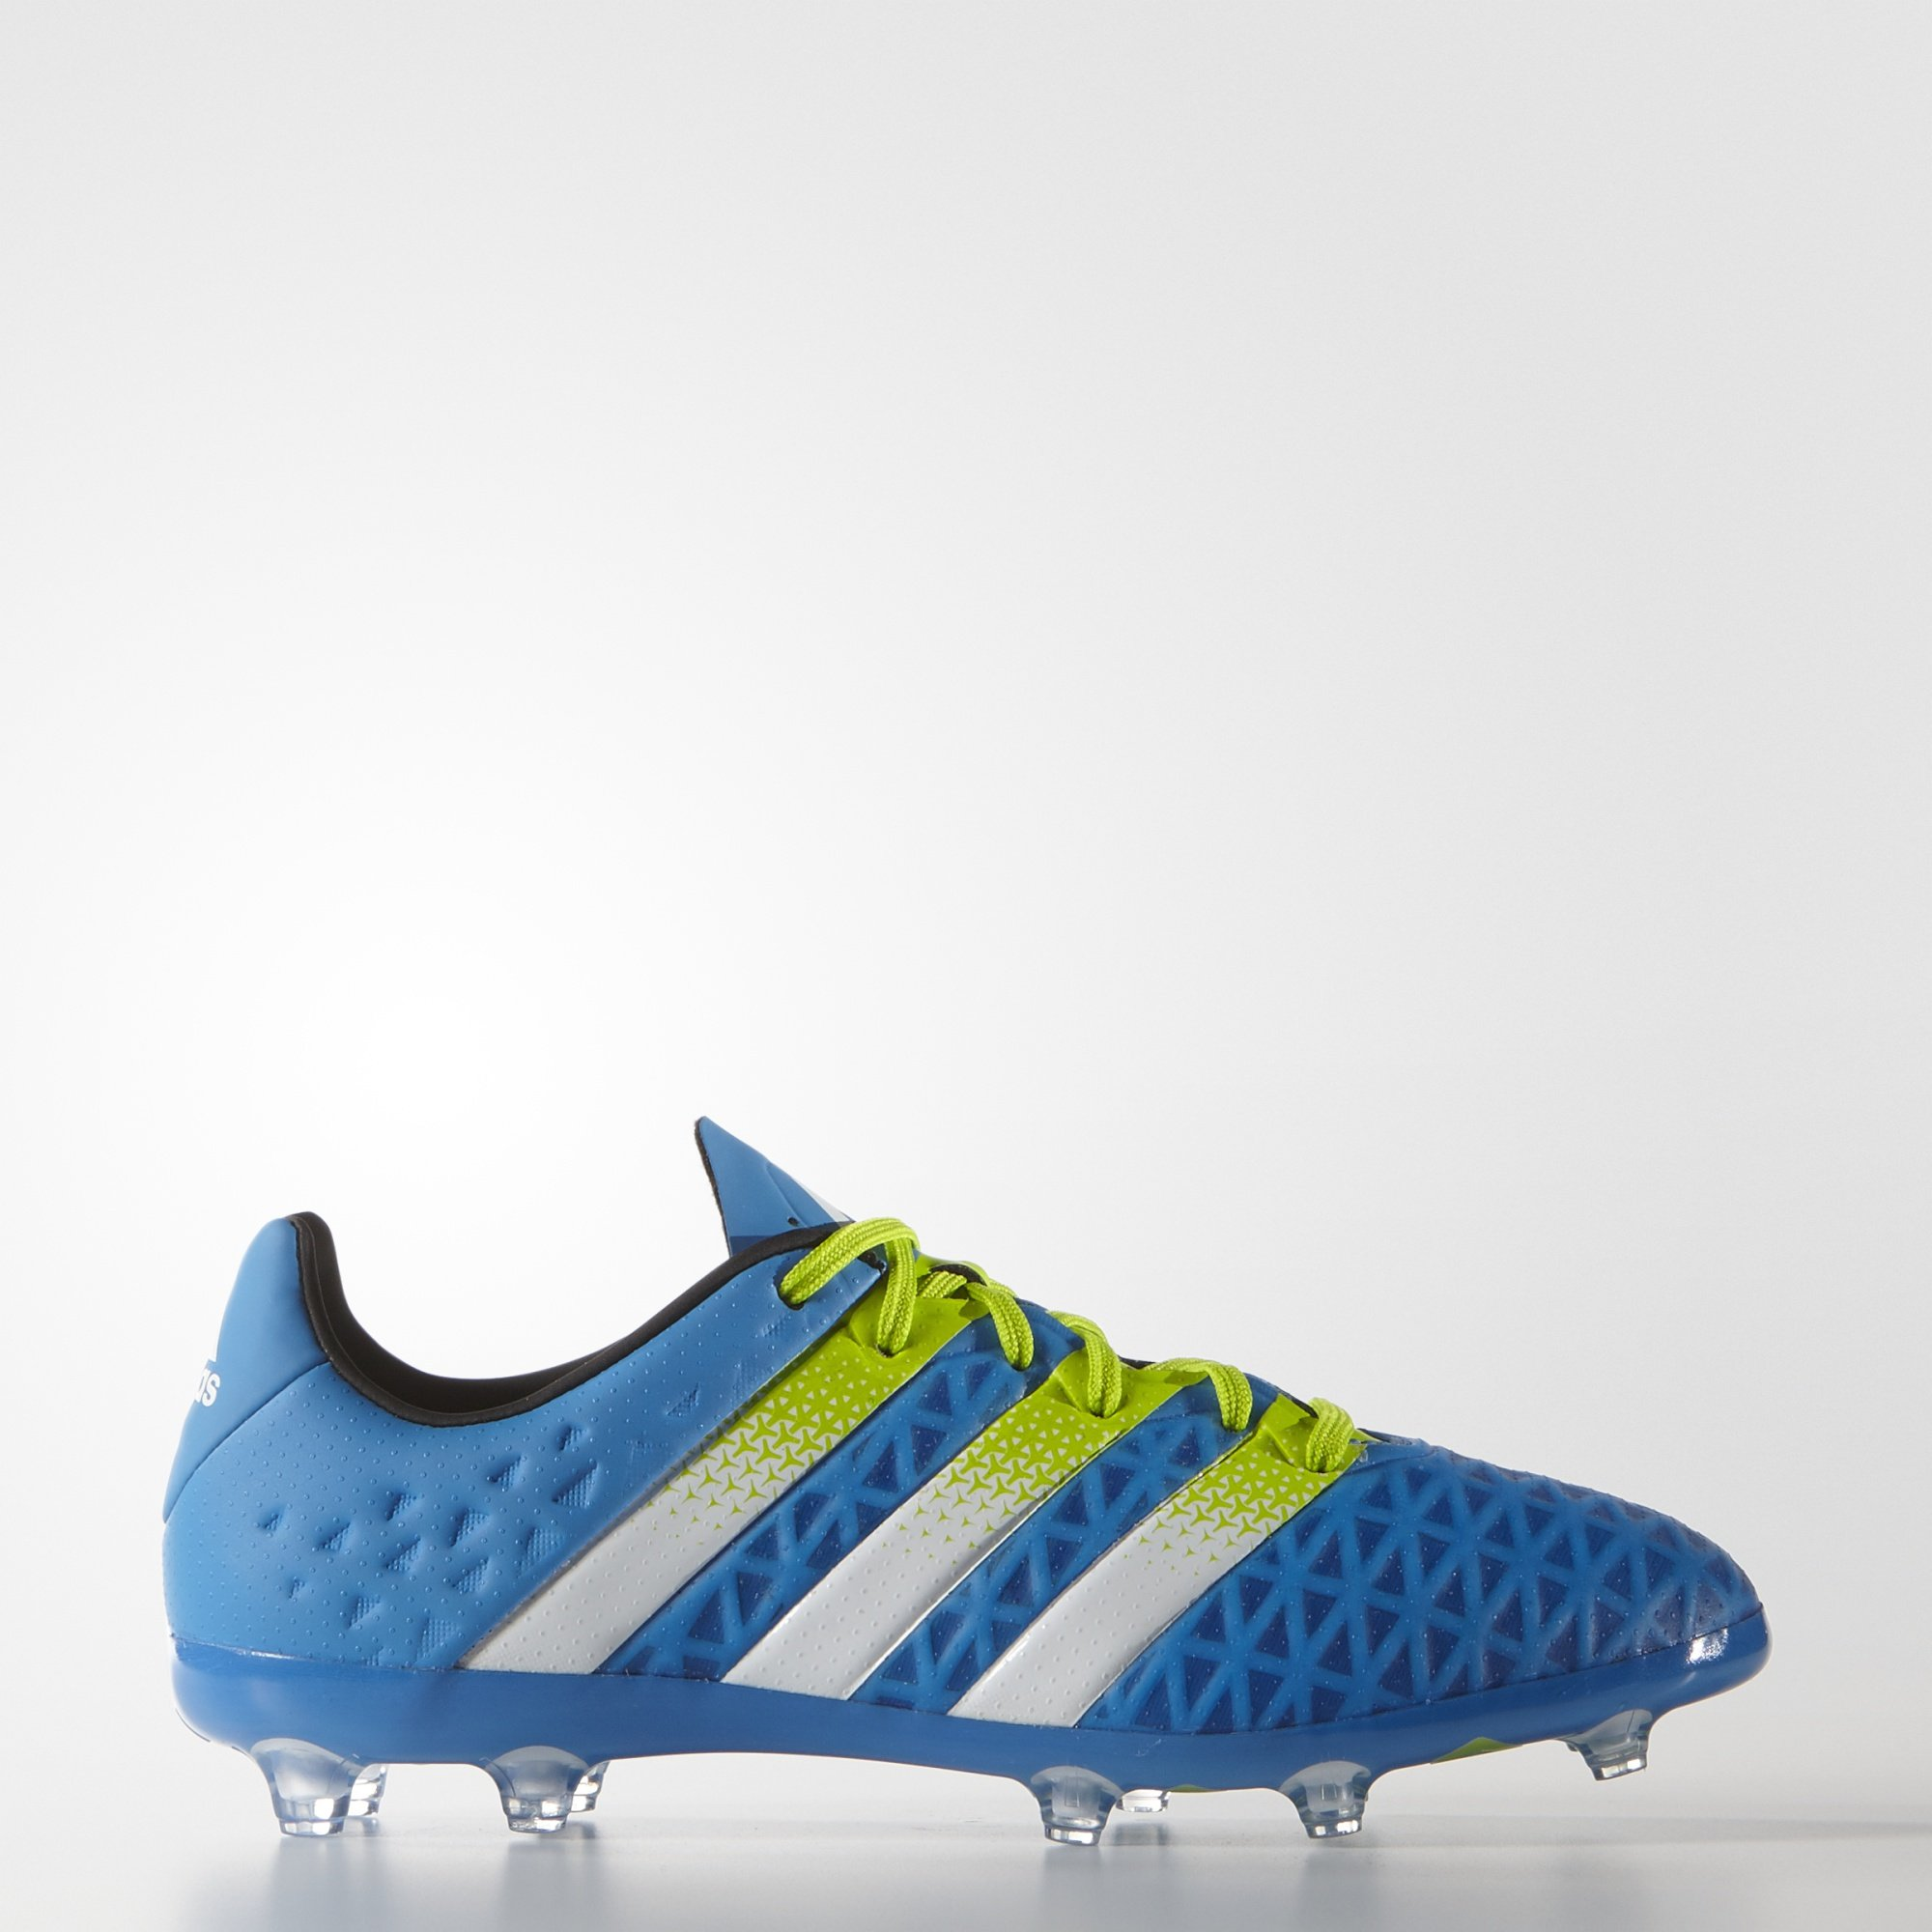 Adidas Soccer Cleats Size 4.5 - Ace 16.1 FG/AG Junior, Blue/White/Green by adidas